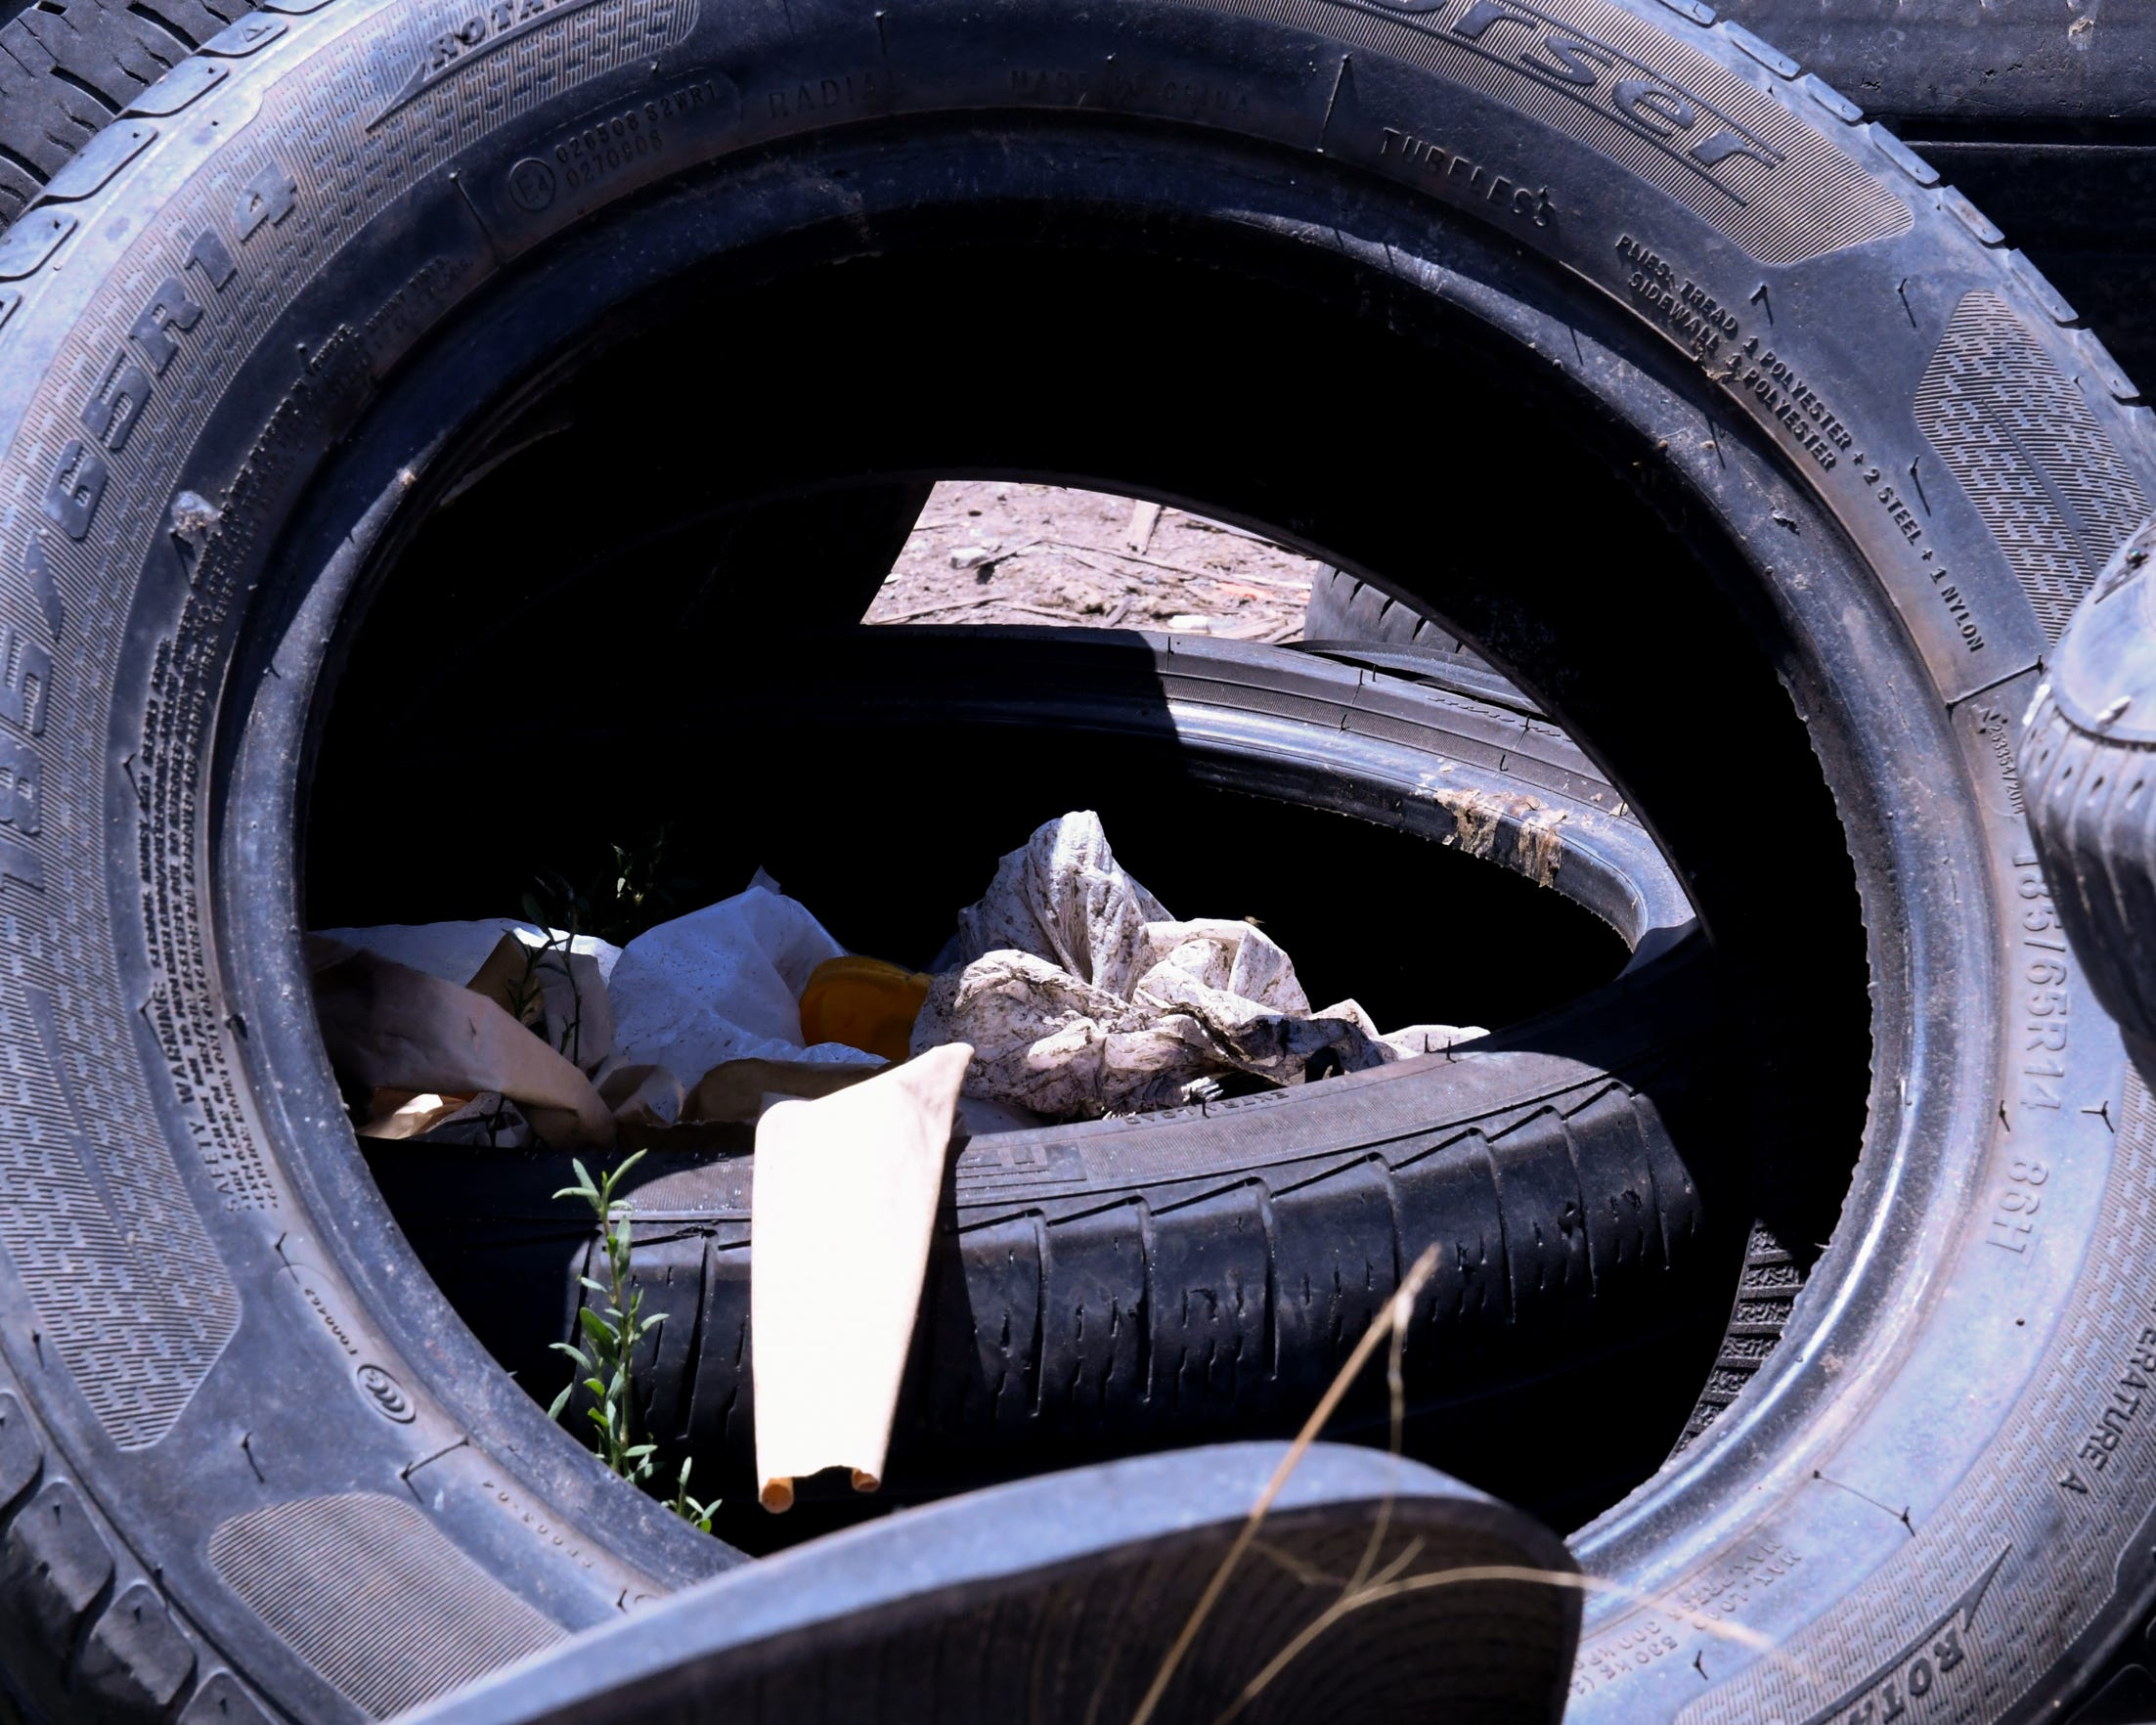 A pile of tires lies alongside the trash pile by the homeless encampment. Some local business owners say other businesses dump them there to avoid remittance fees. June 19, 2019.